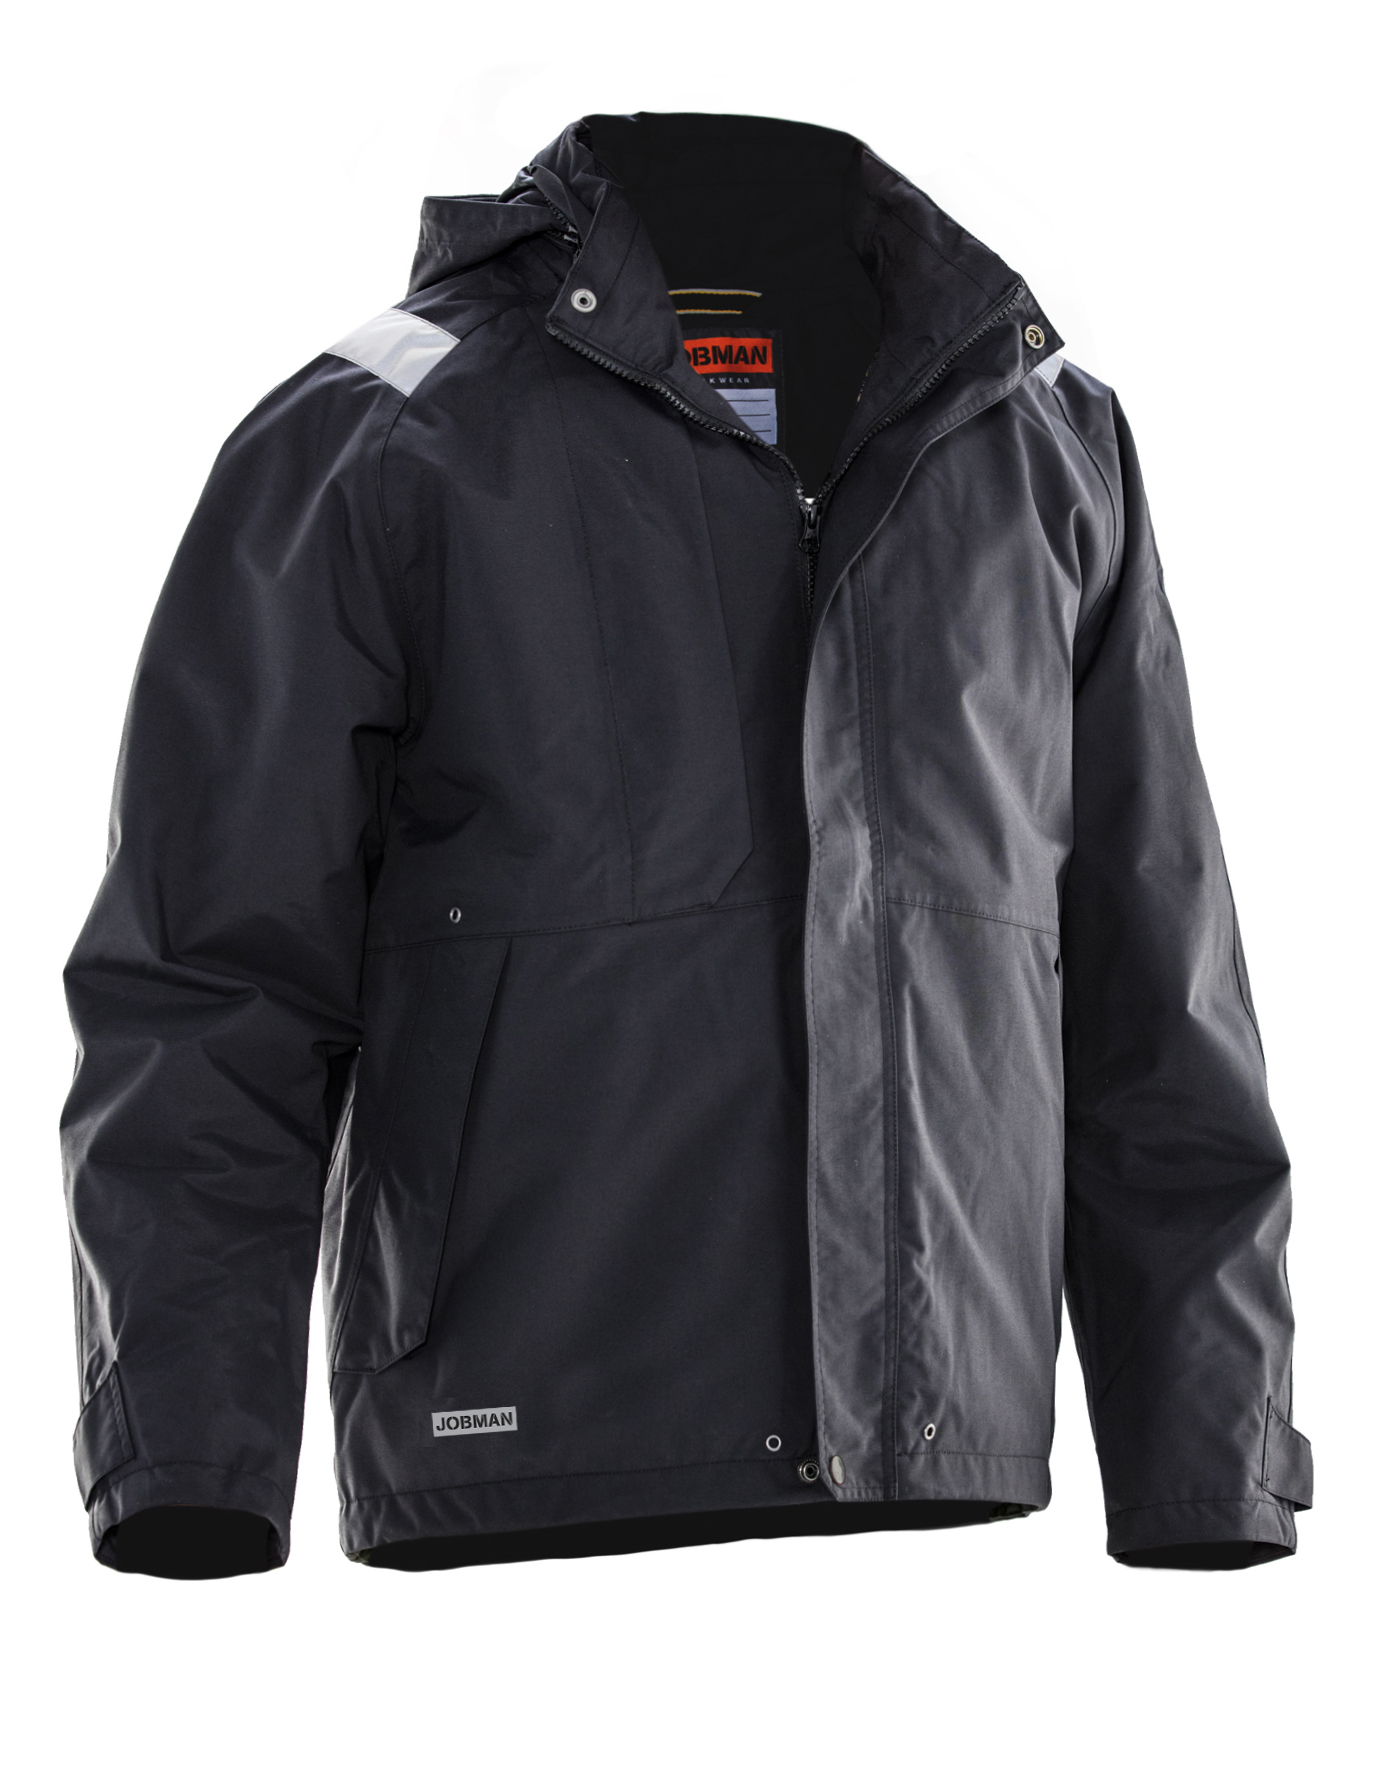 Waterproof shell jacket